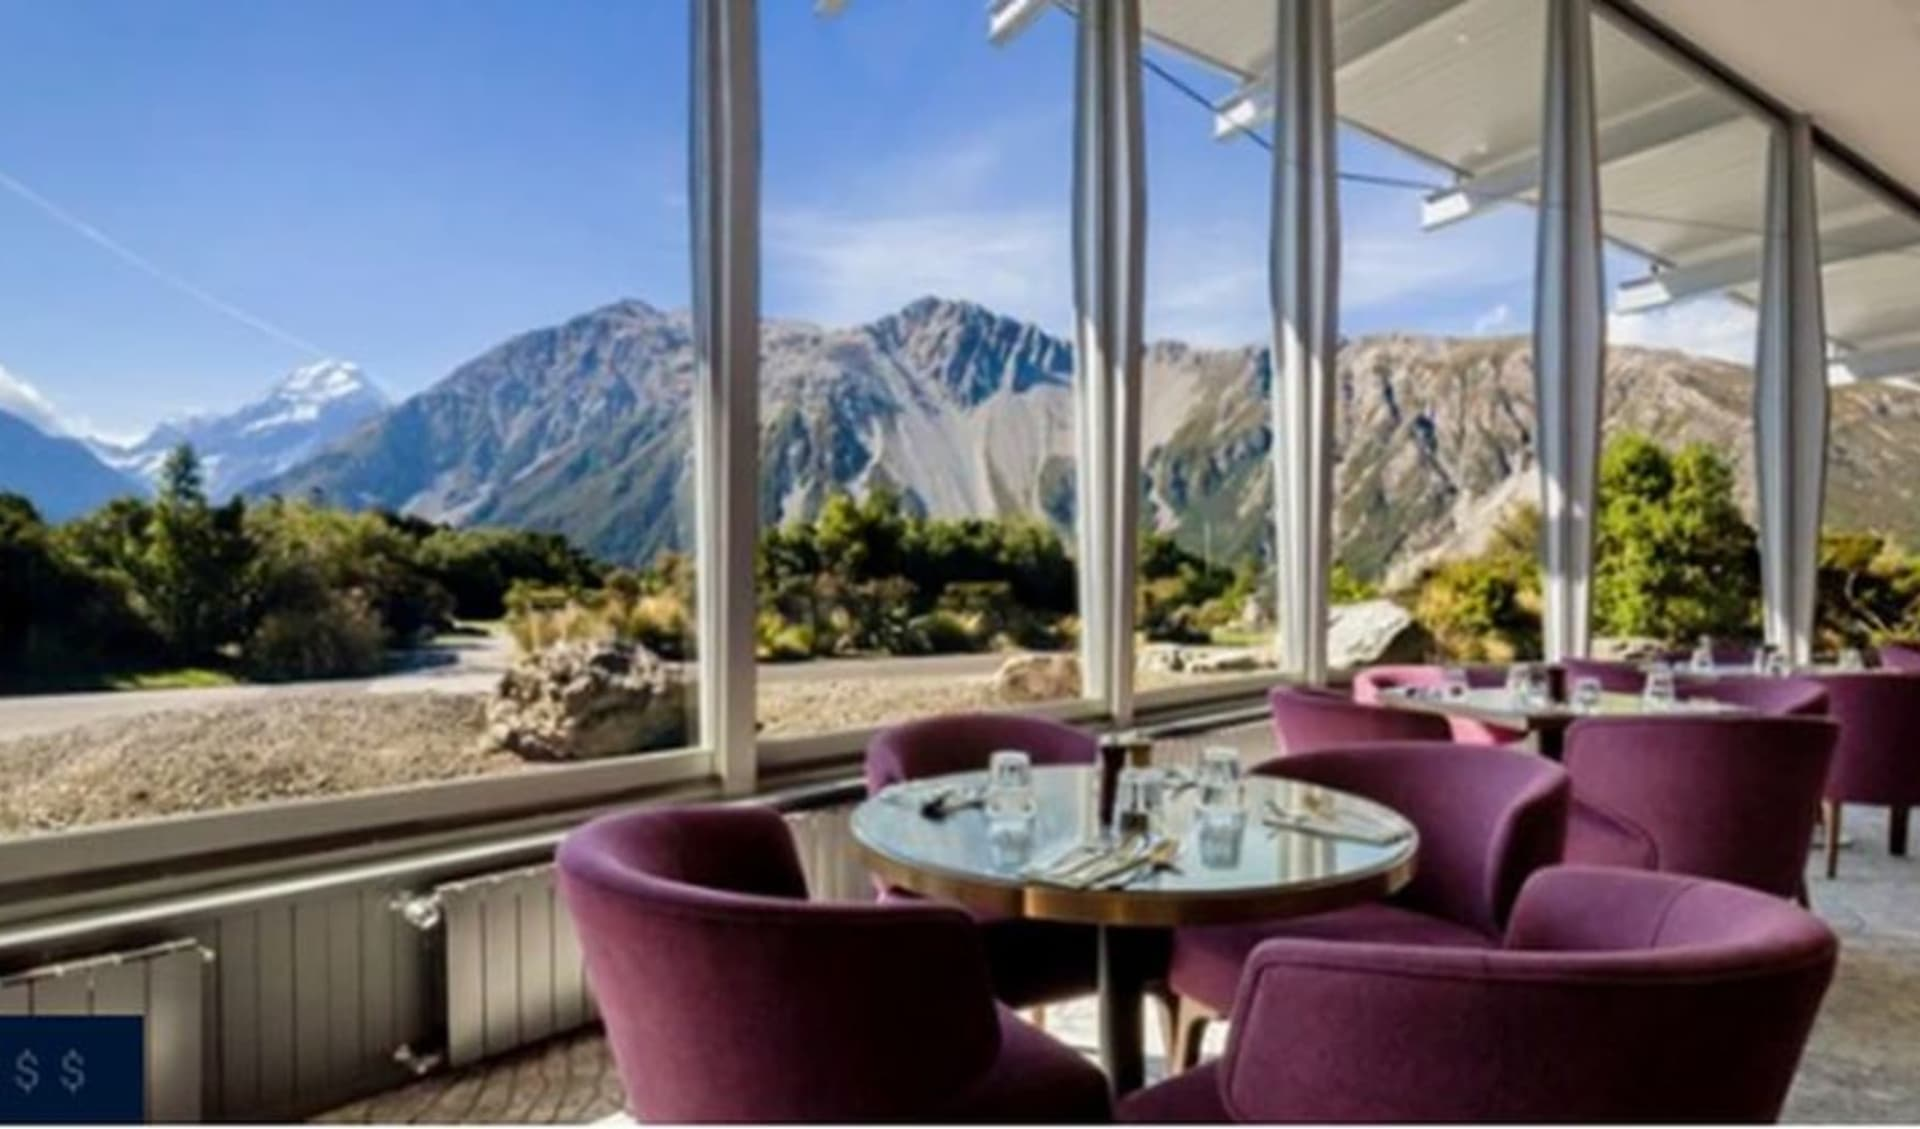 The Hermitage Hotel in Mount Cook: The Hermitage, Mt Cook Restaurant